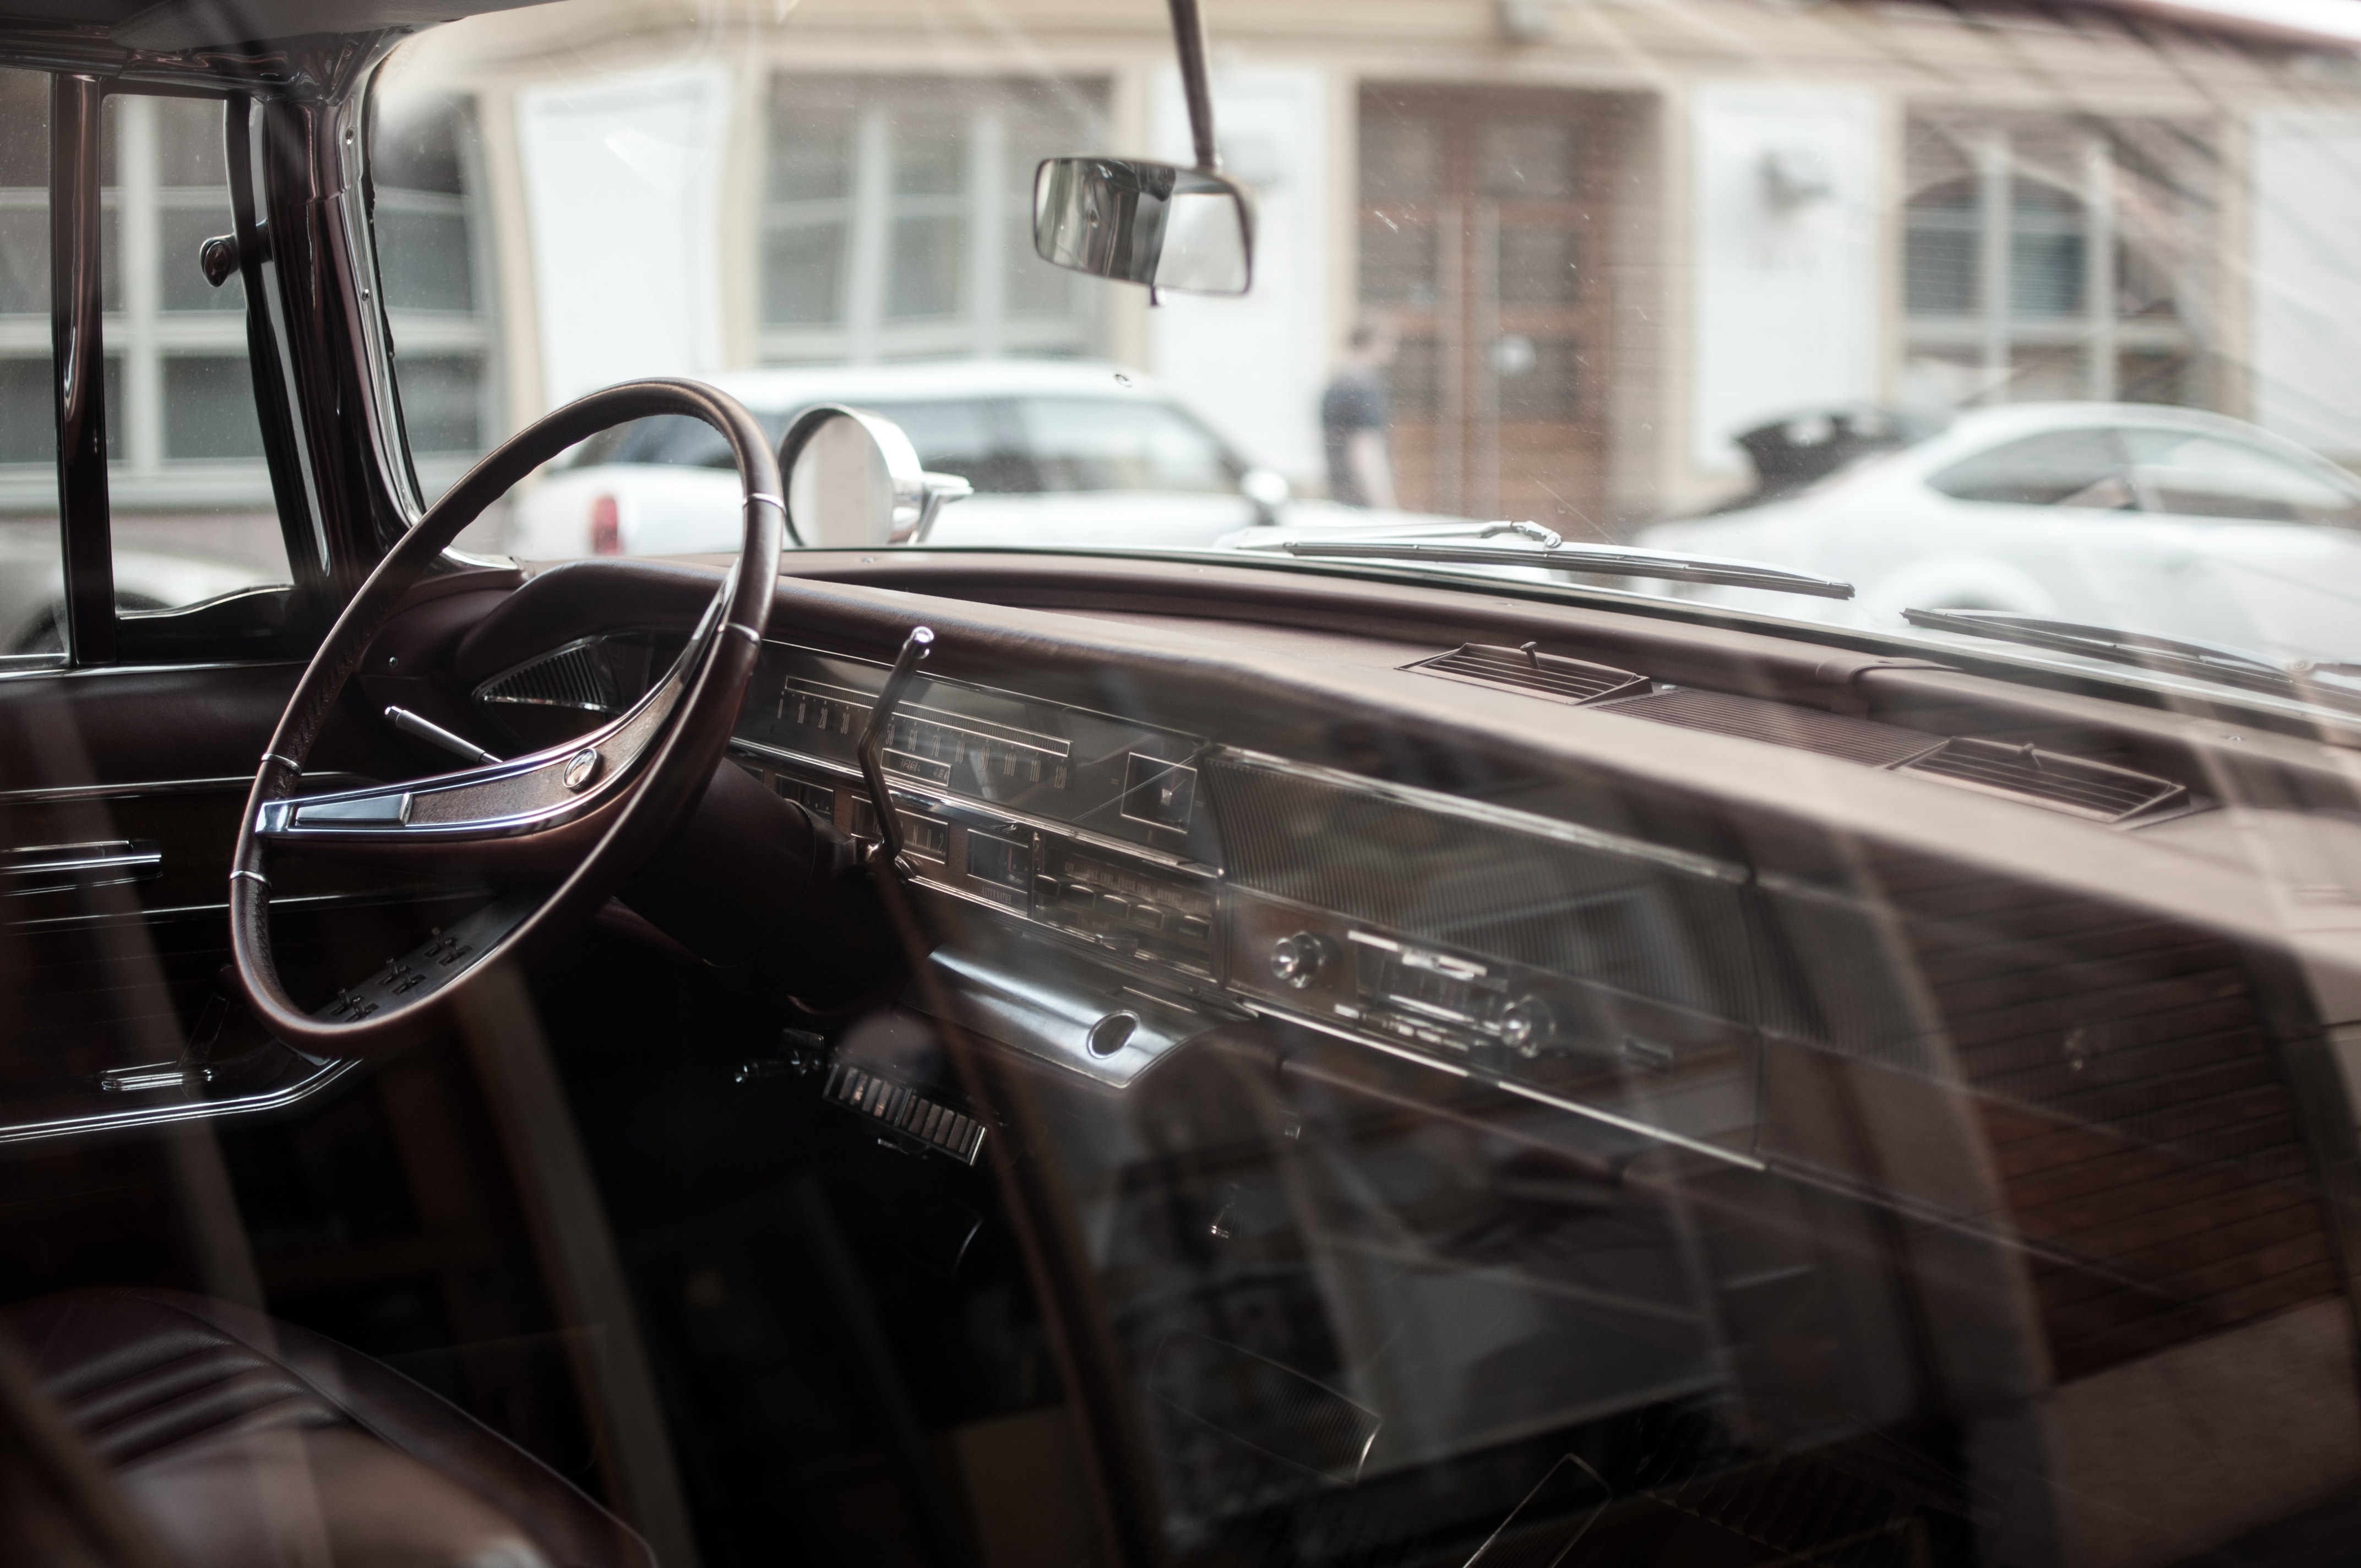 The inside and dashboard of a vintage car